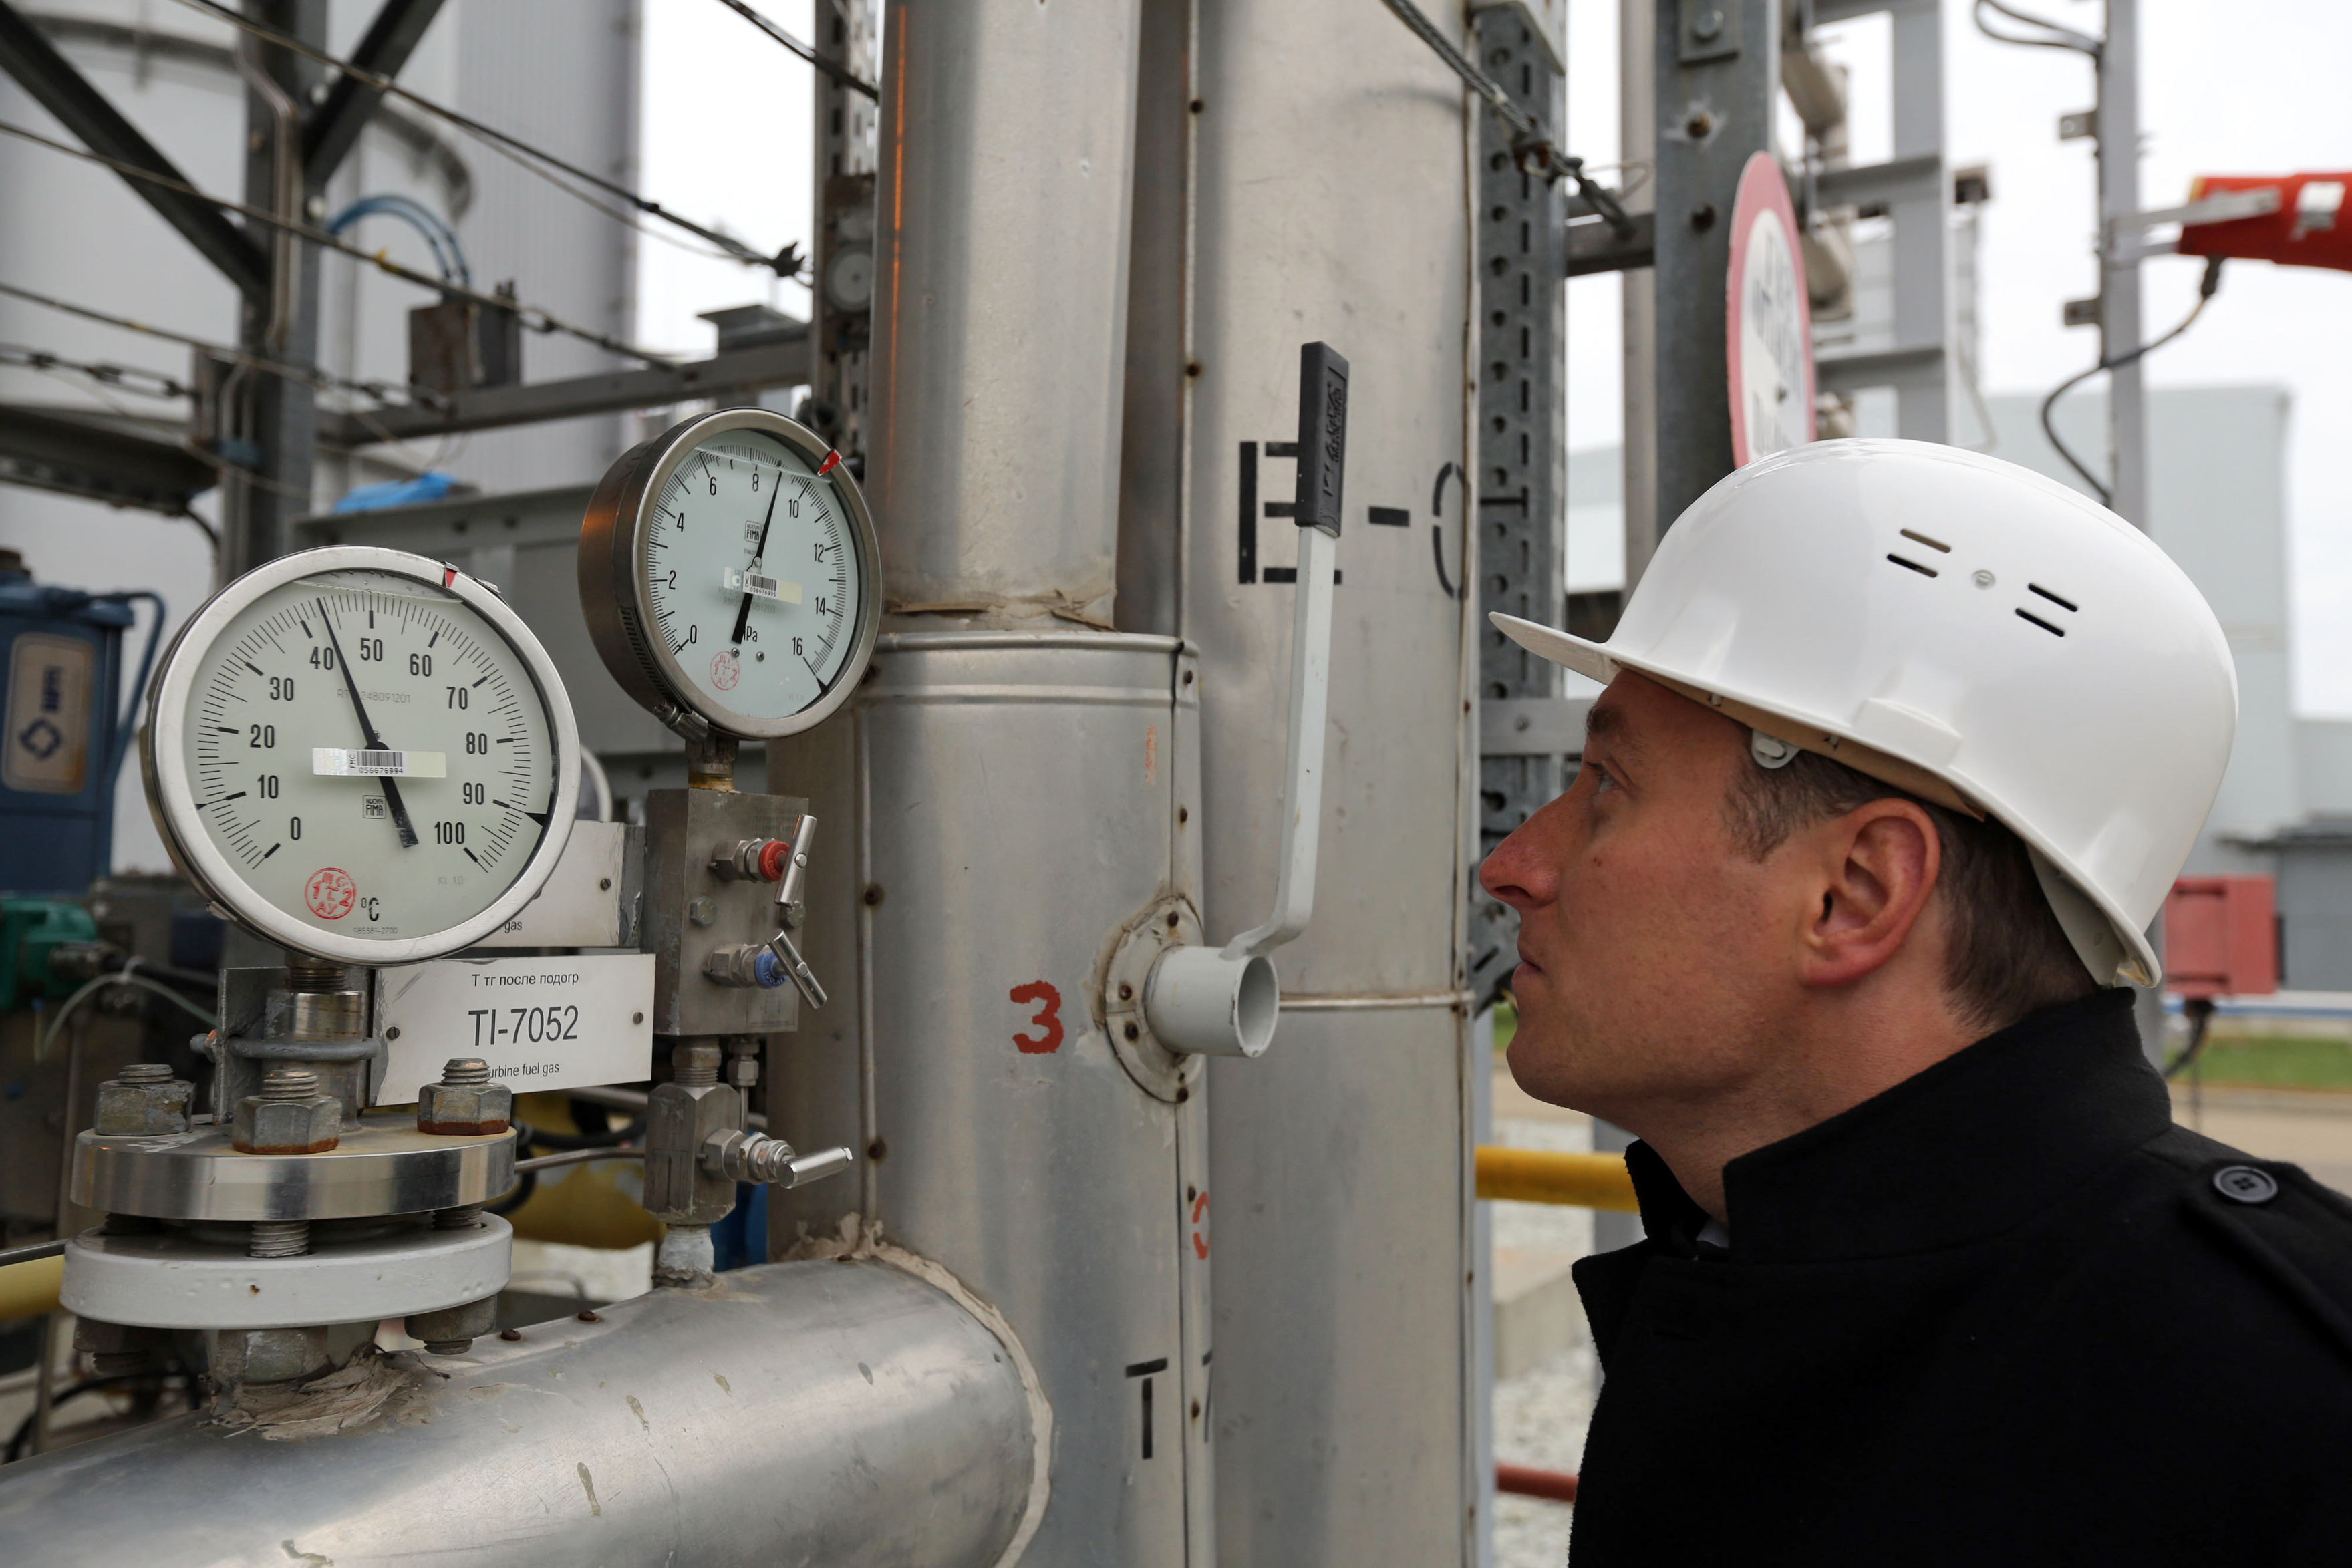 An employee checks gauges at the Beregovaya compressor station, part of the Blue Stream gas pipeline, a joint venture between OAO Gazprom and Eni SpA, in Gelendzhik, Russia. Photographer: Andrey Rudakov/Bloomberg